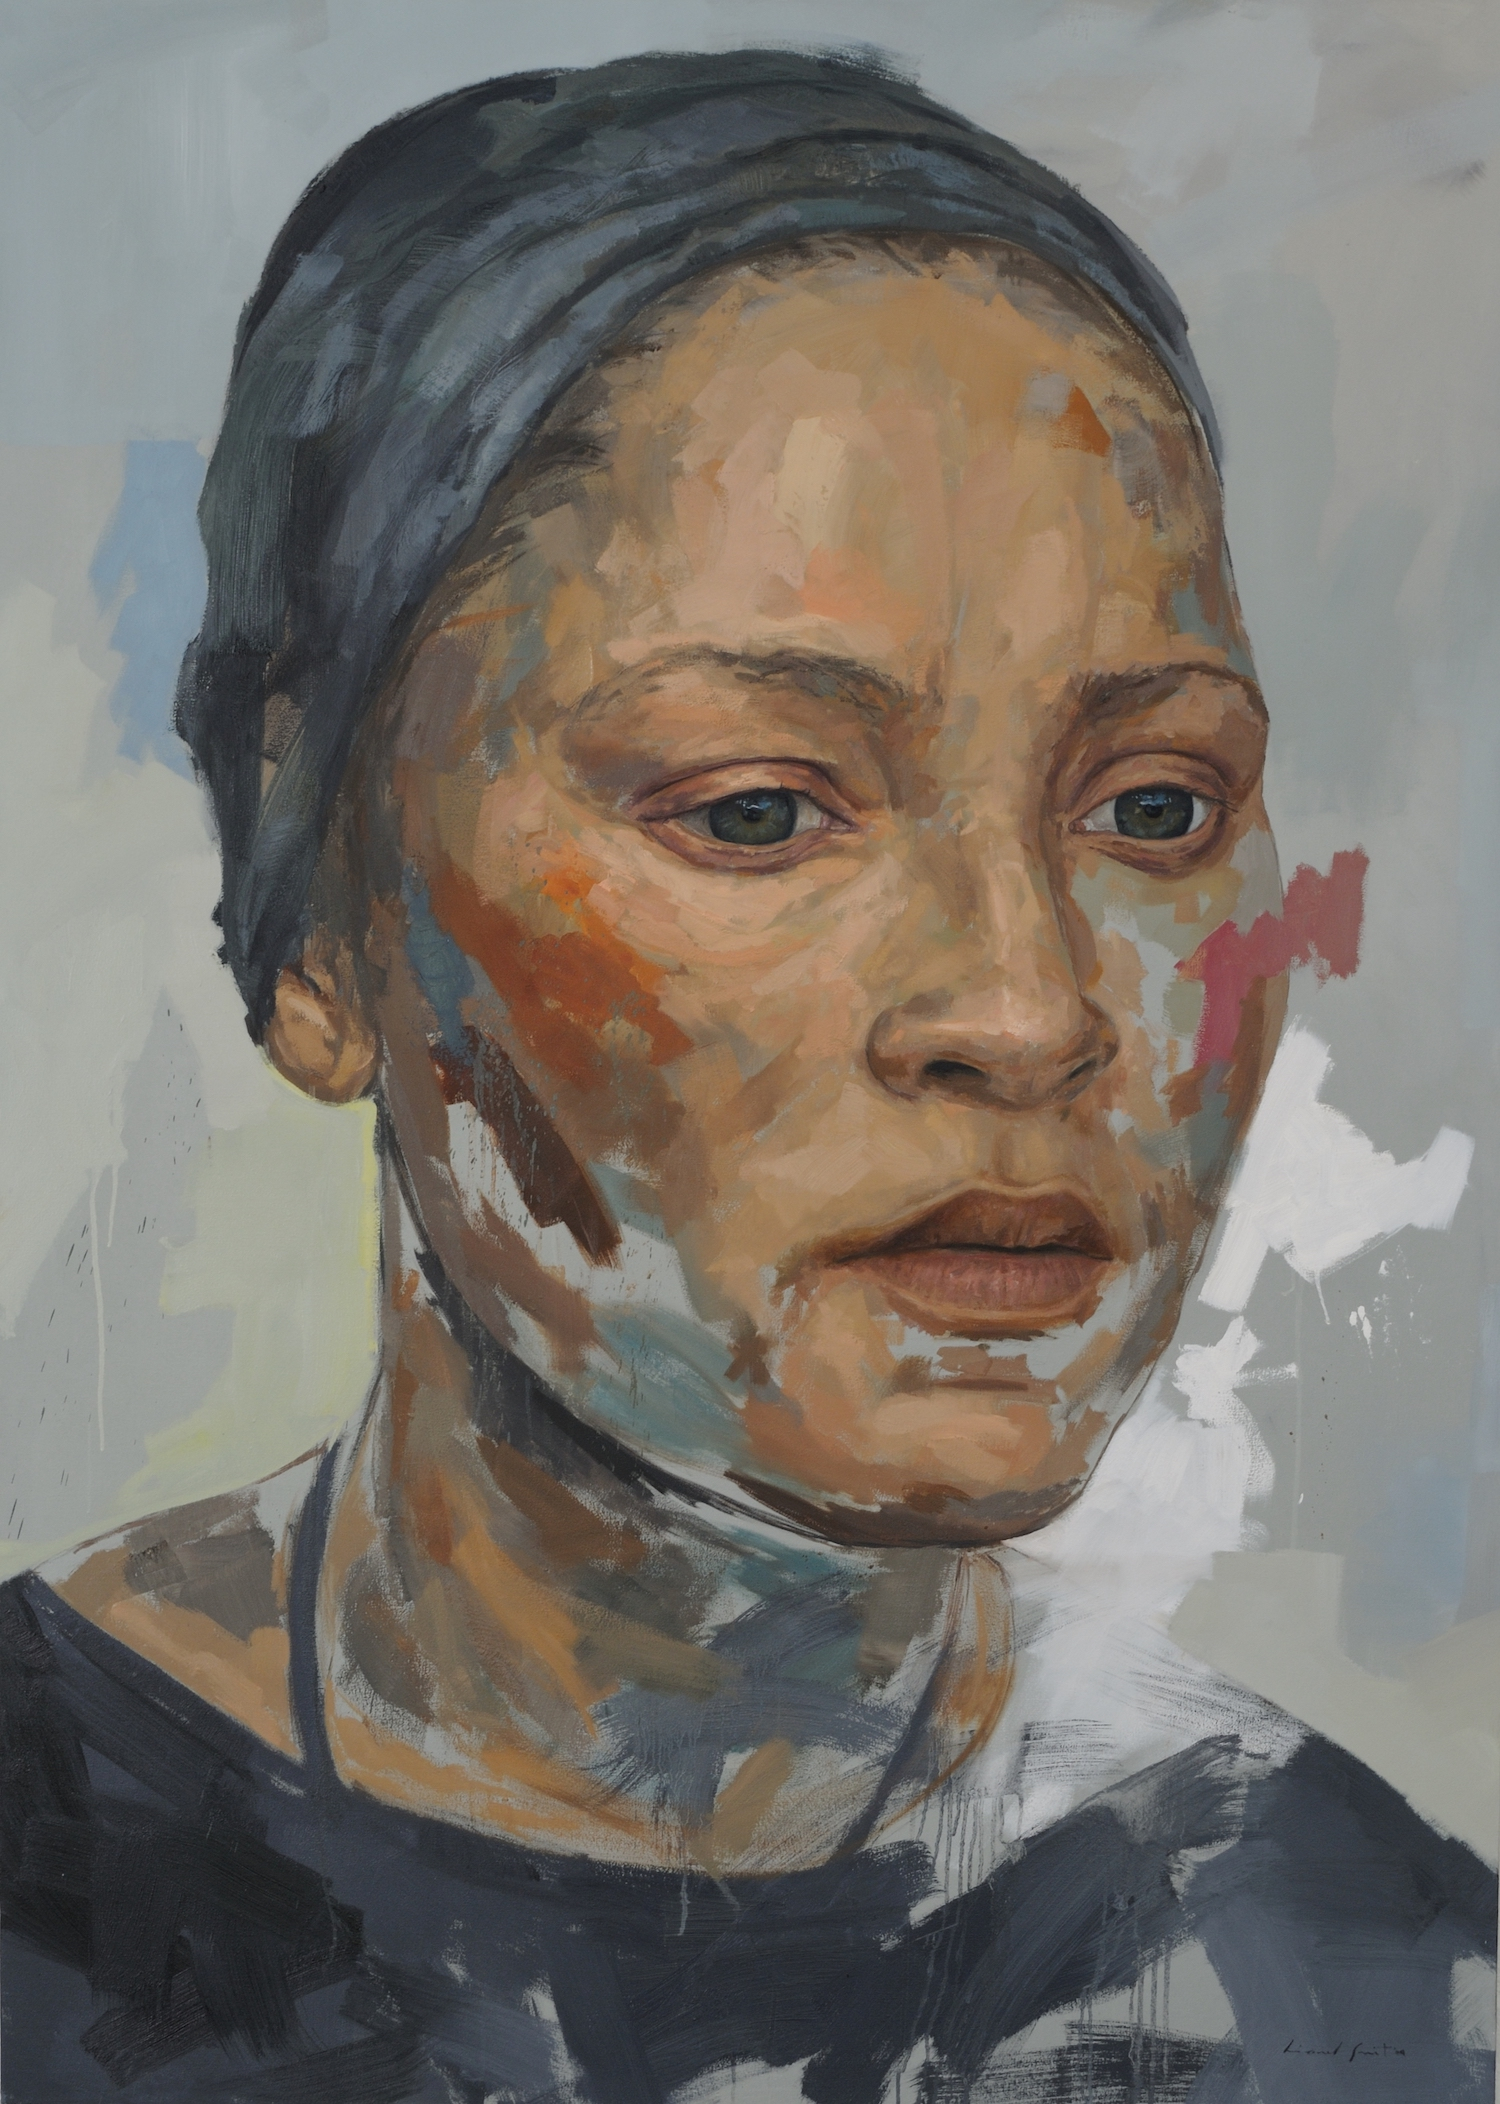 Residue series 3, 2009, Oil on Canvas, 2300mm X 1650mm